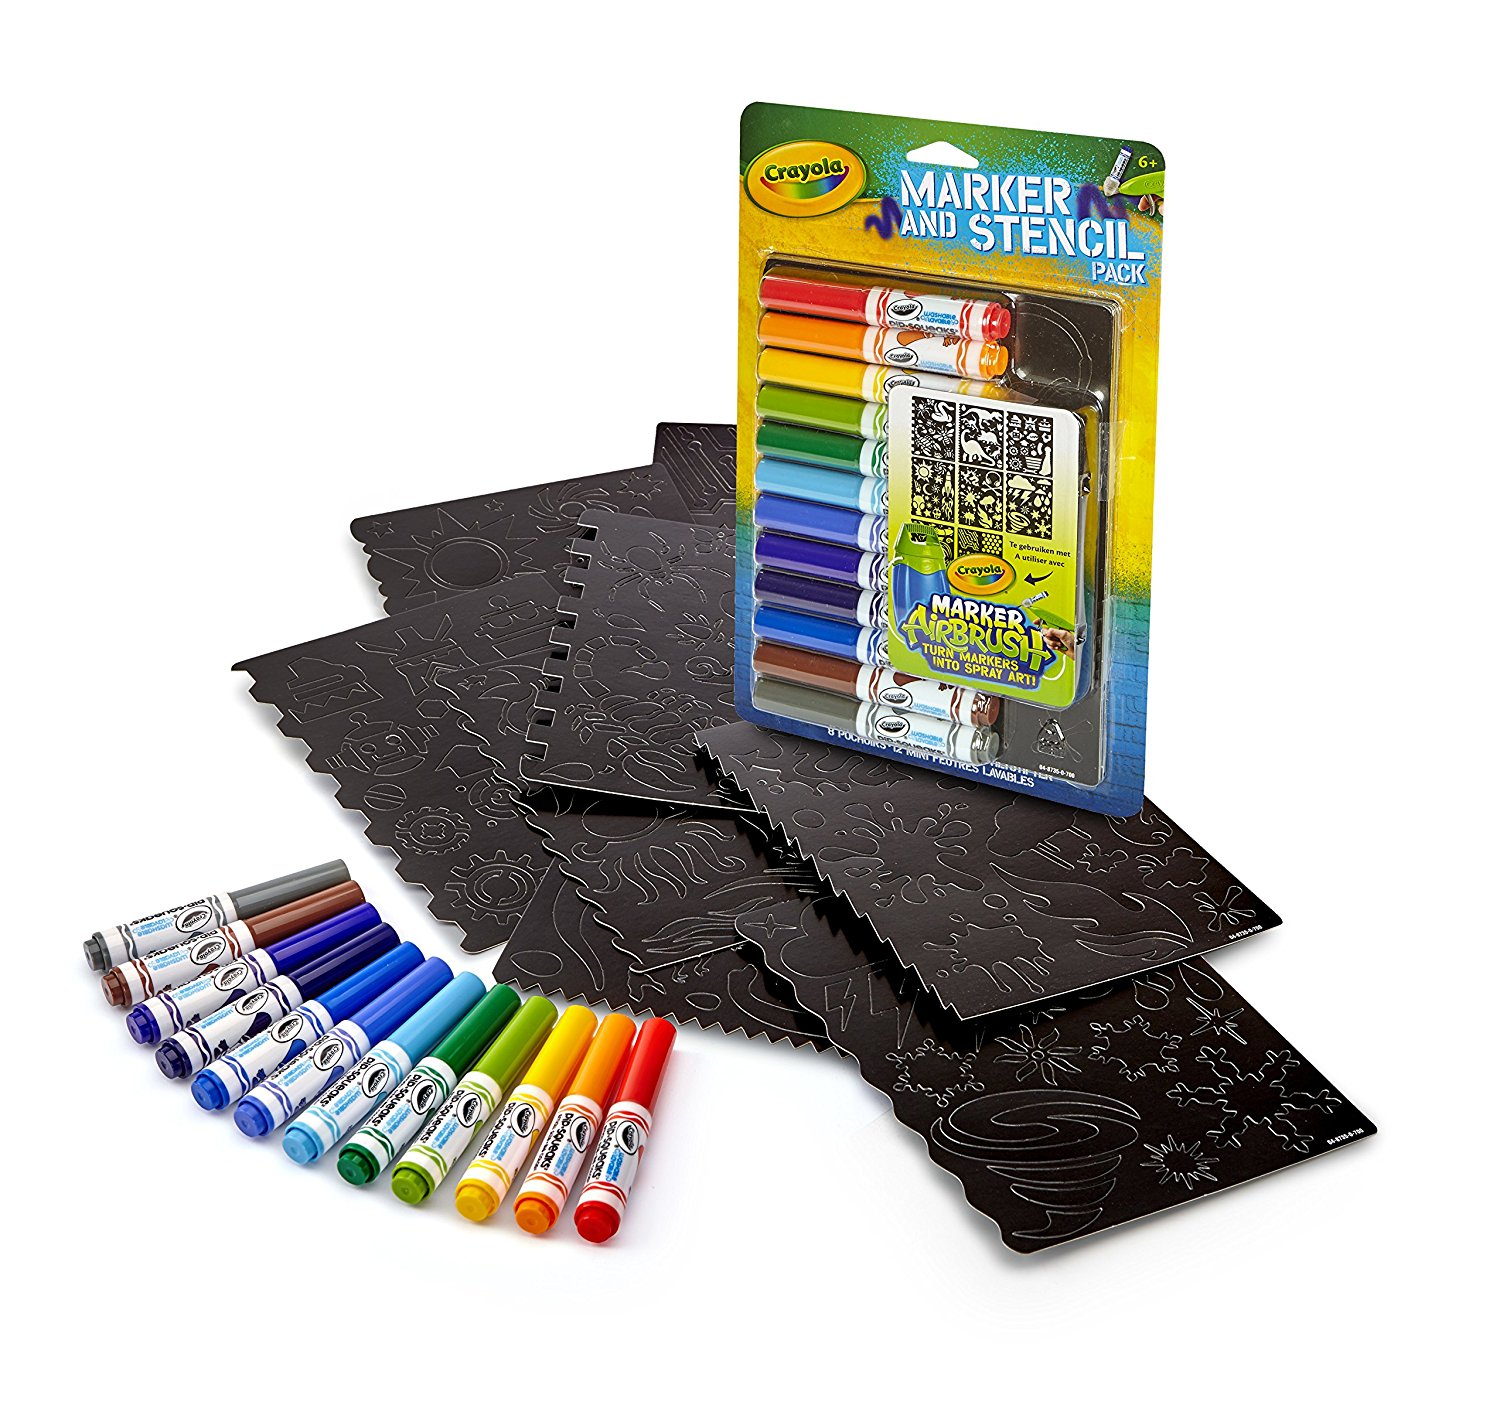 Crayola Airbrush Marker and Stencil Pack